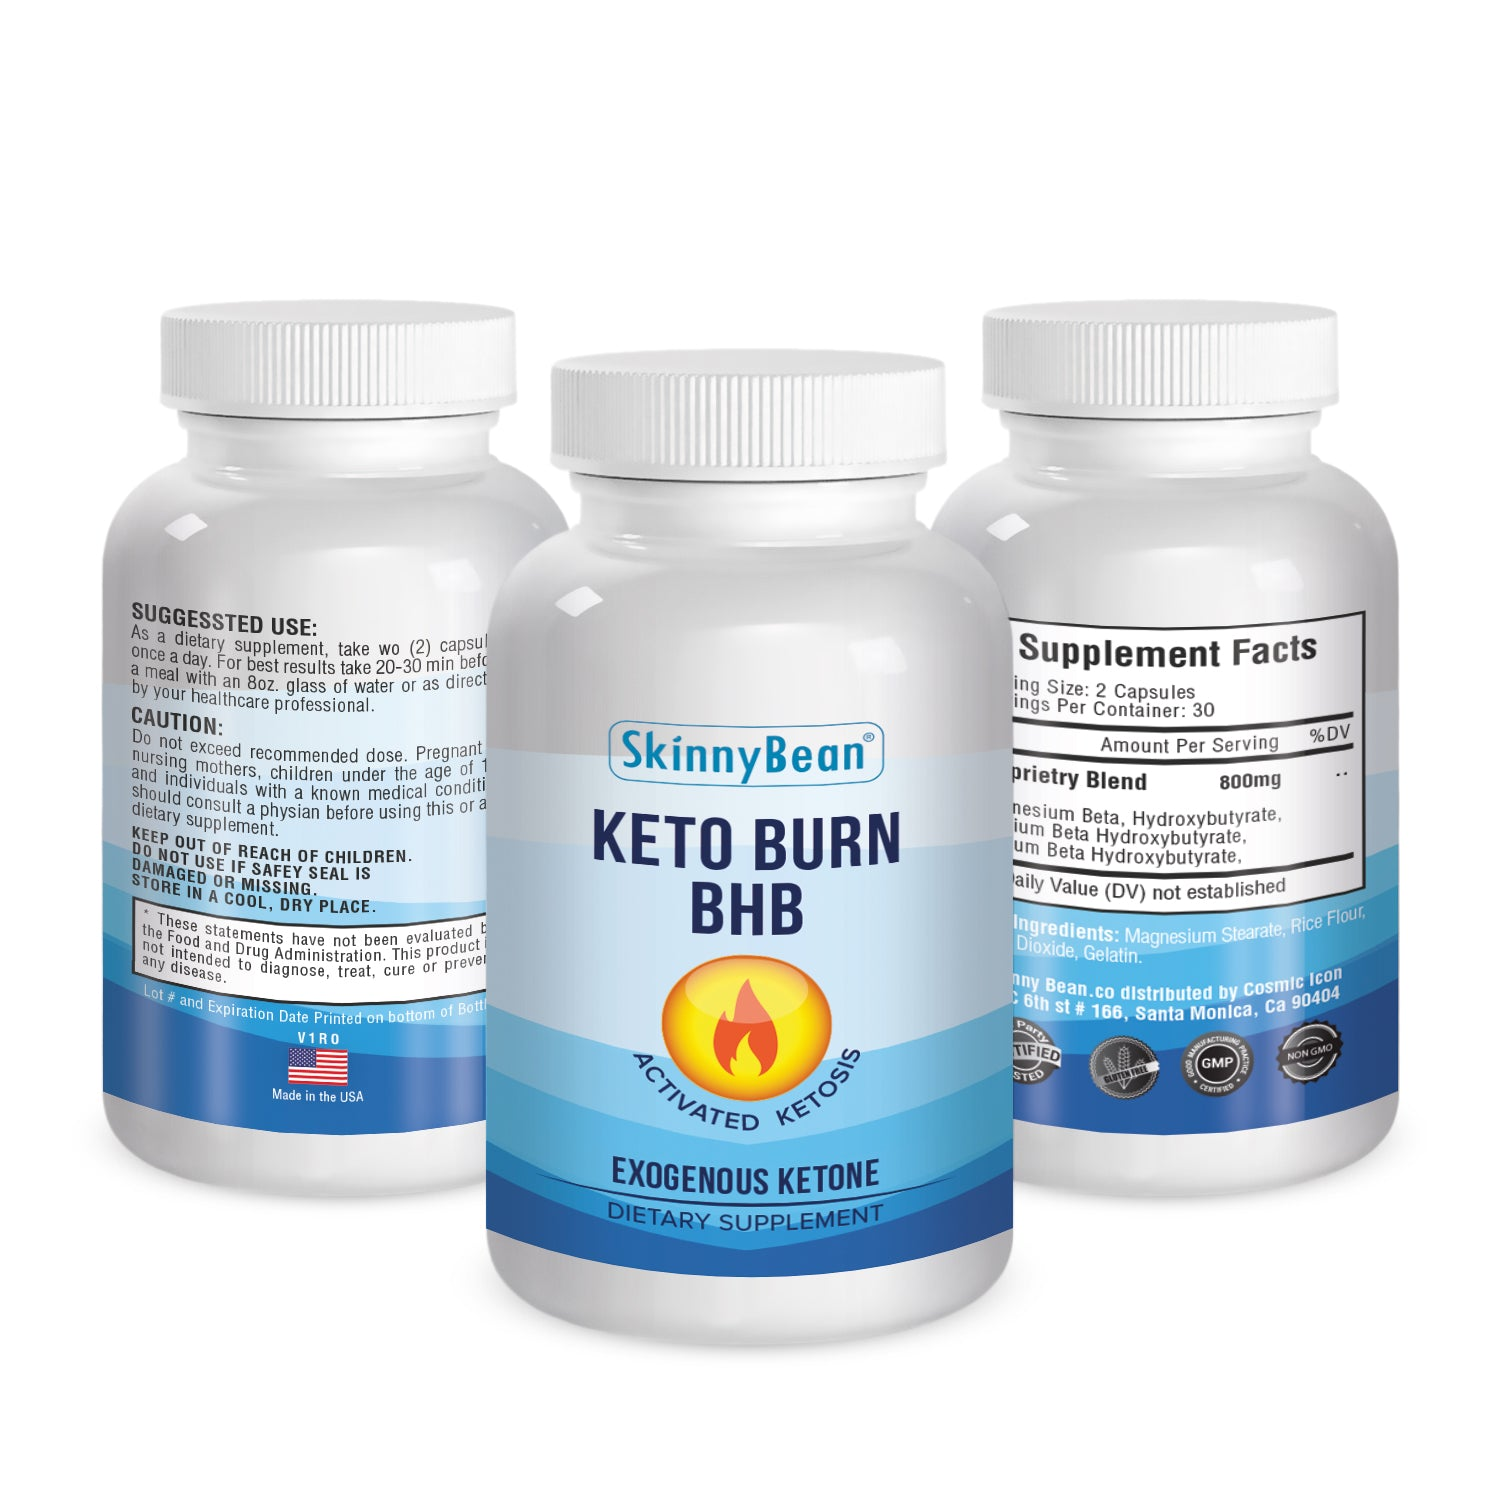 Keto Burn BHB with Exogenous Ketones by Skinny Bean